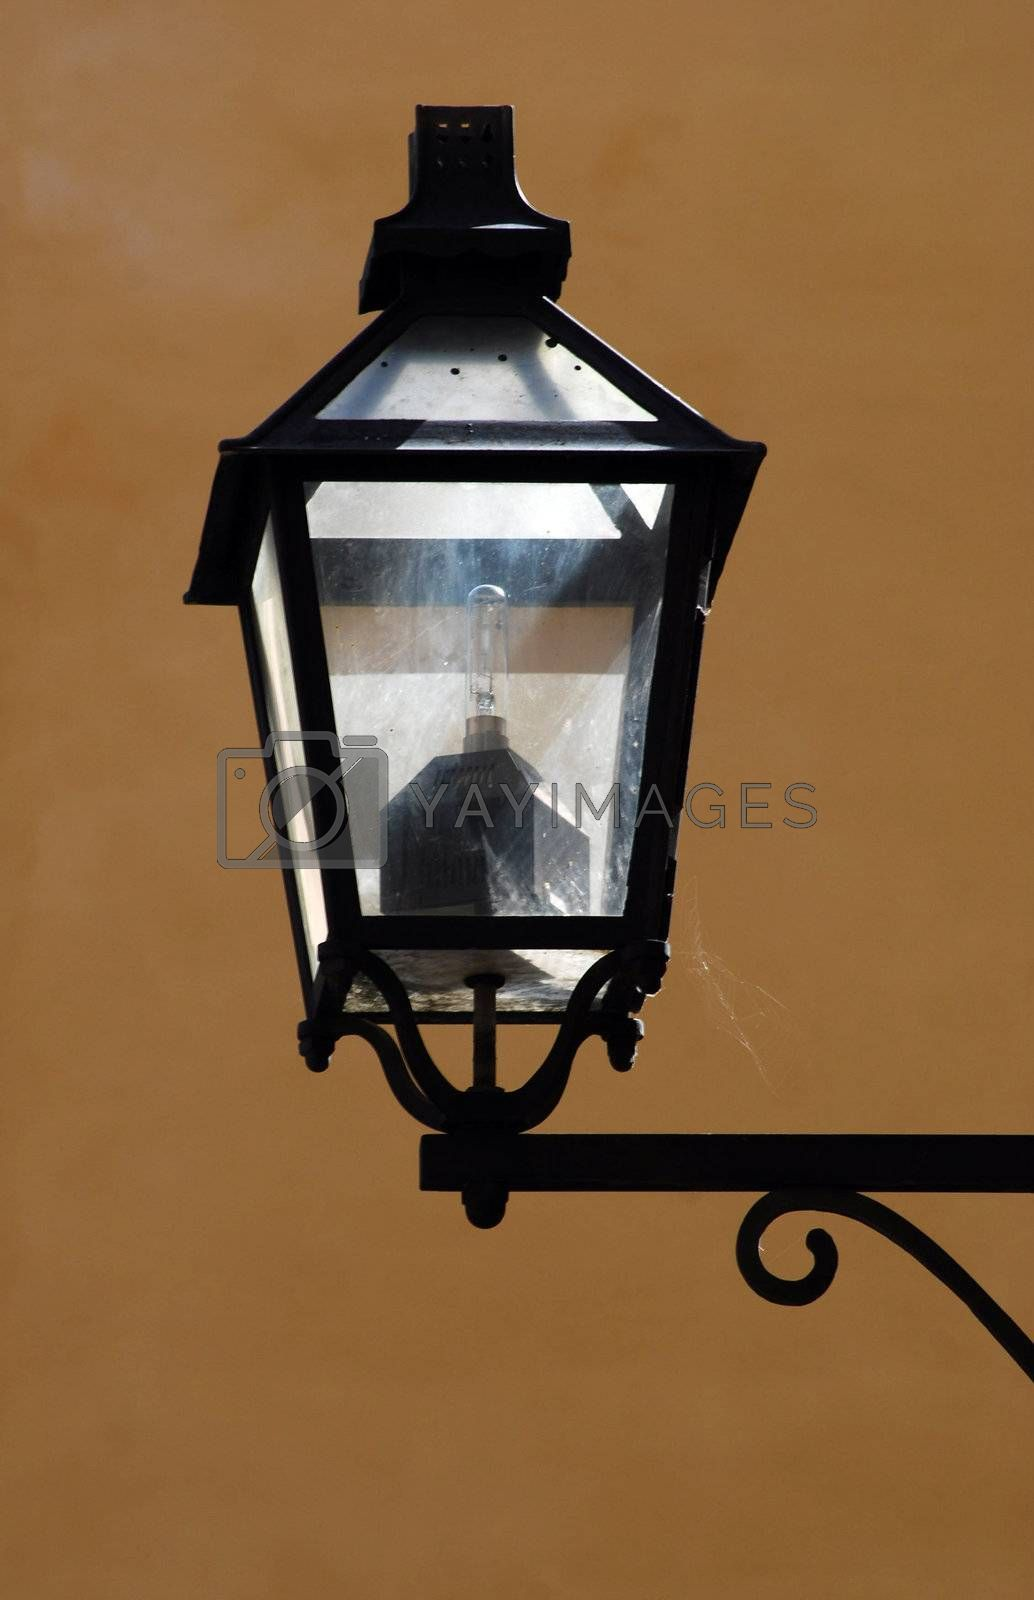 streetlamp with spidernet and reflections in gamla stan Stockholm